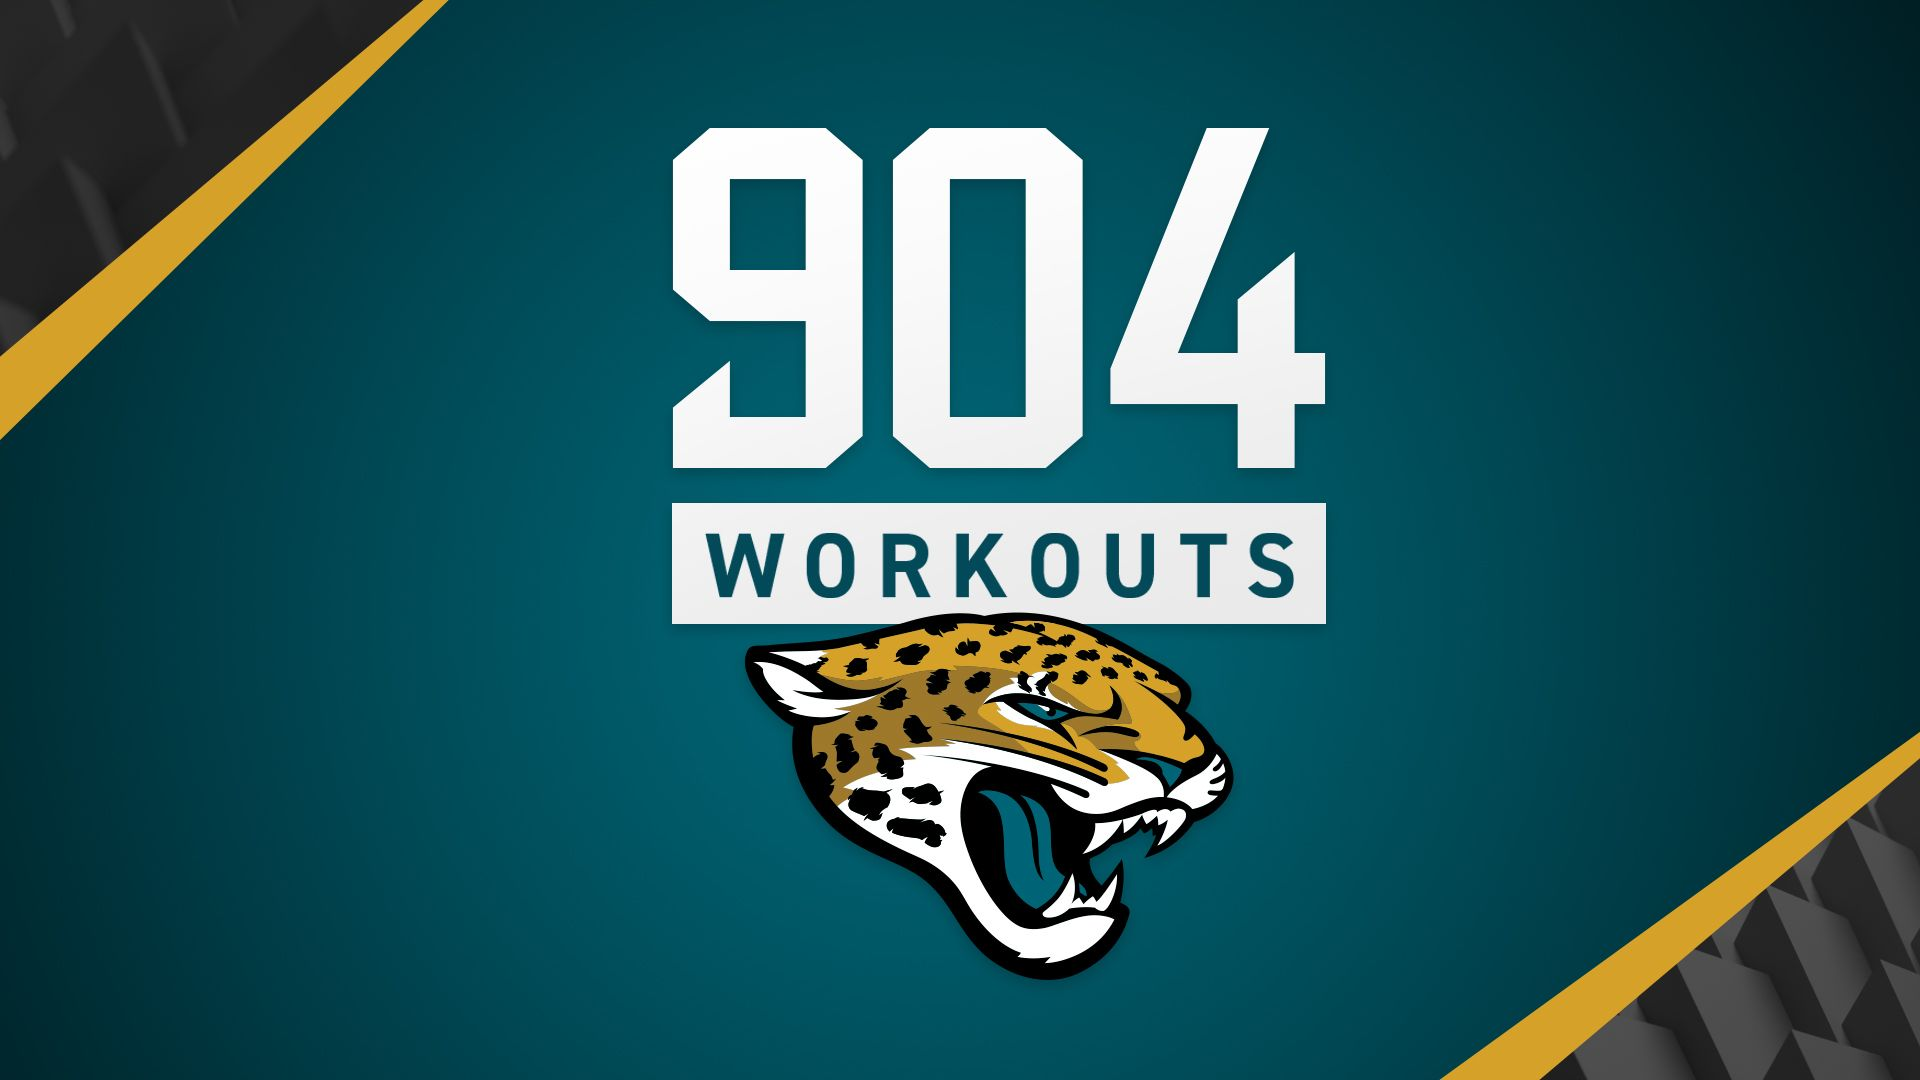 904 Workouts